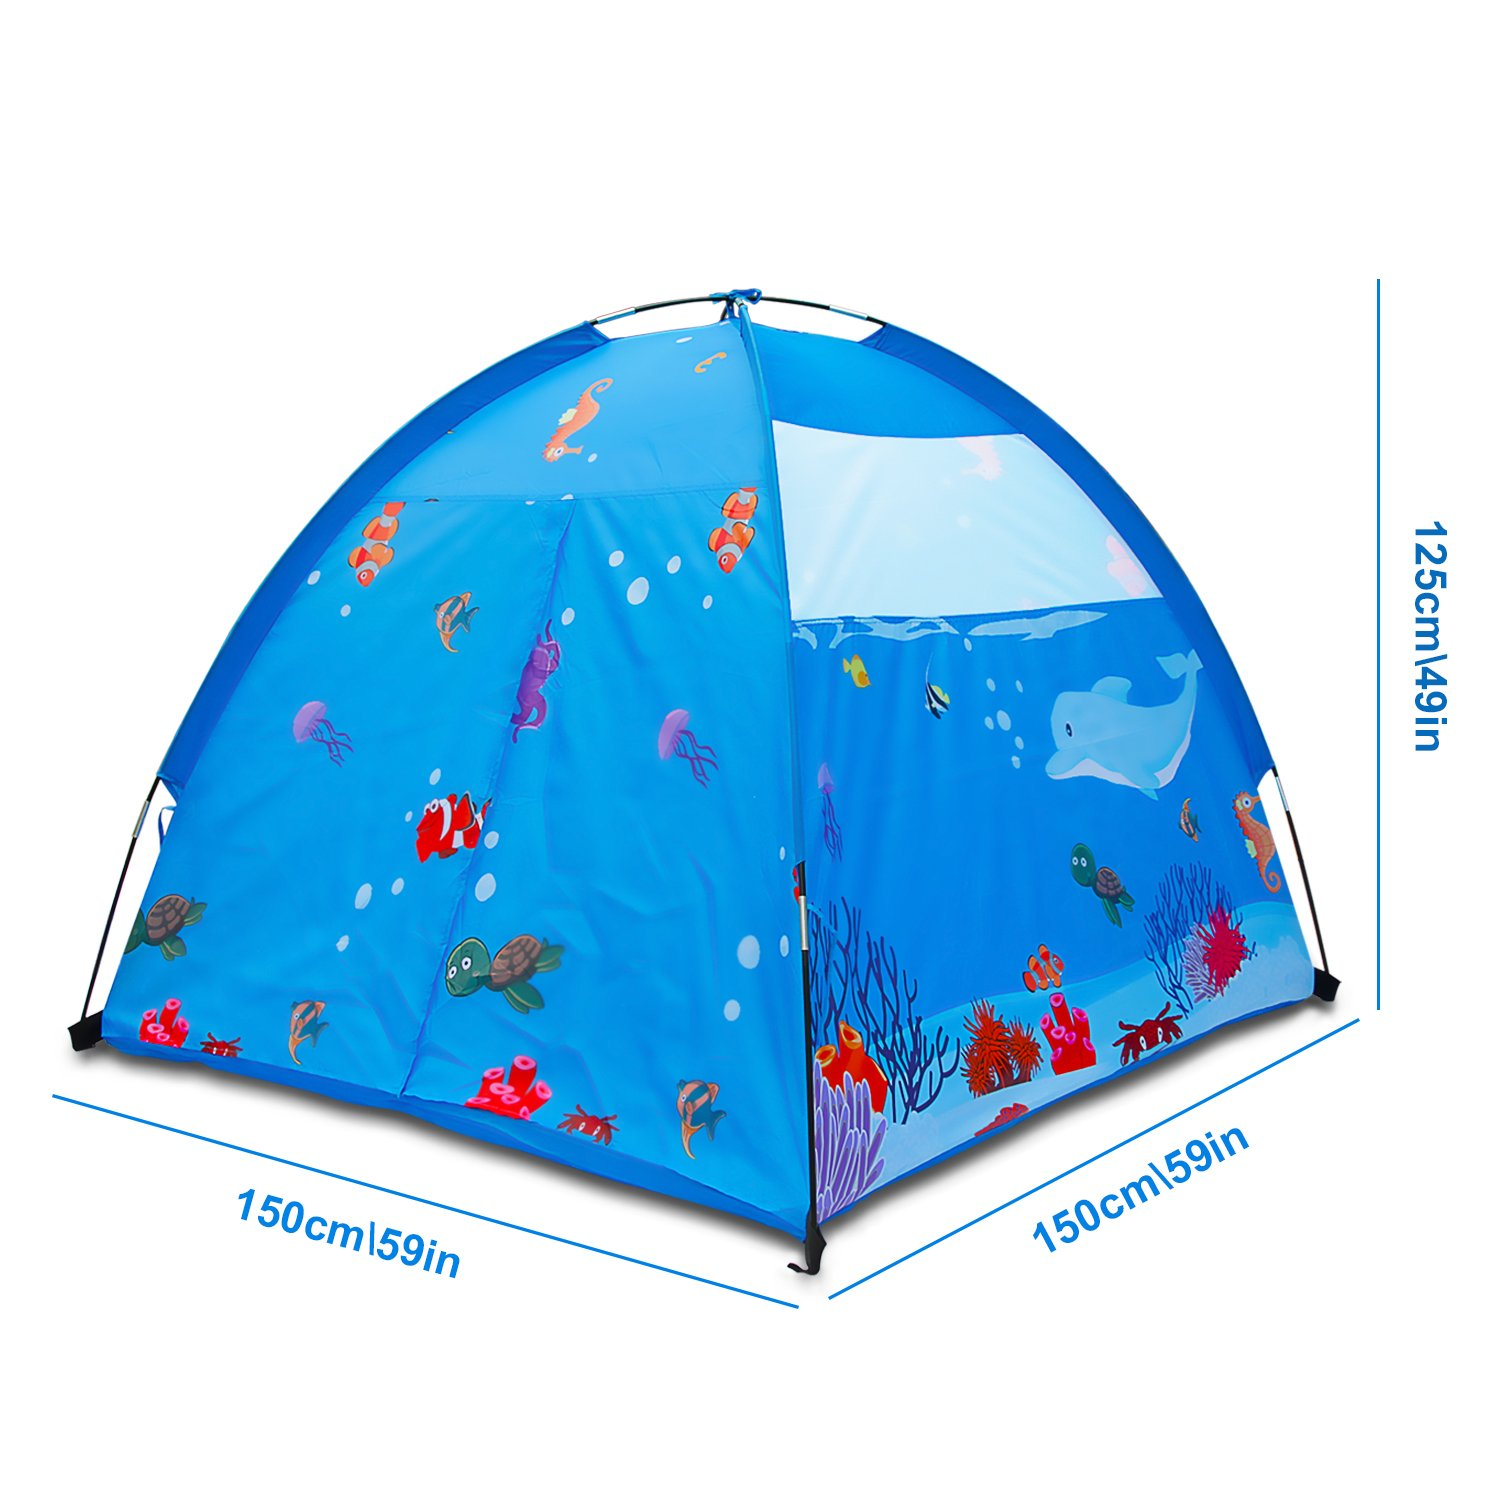 Homfu Play Tent For Kids Dome Style Playhouse For Children Indoor Outdoor Toy Ocean Sea World Pattern Boys and Girls Beach Tent (Blue)